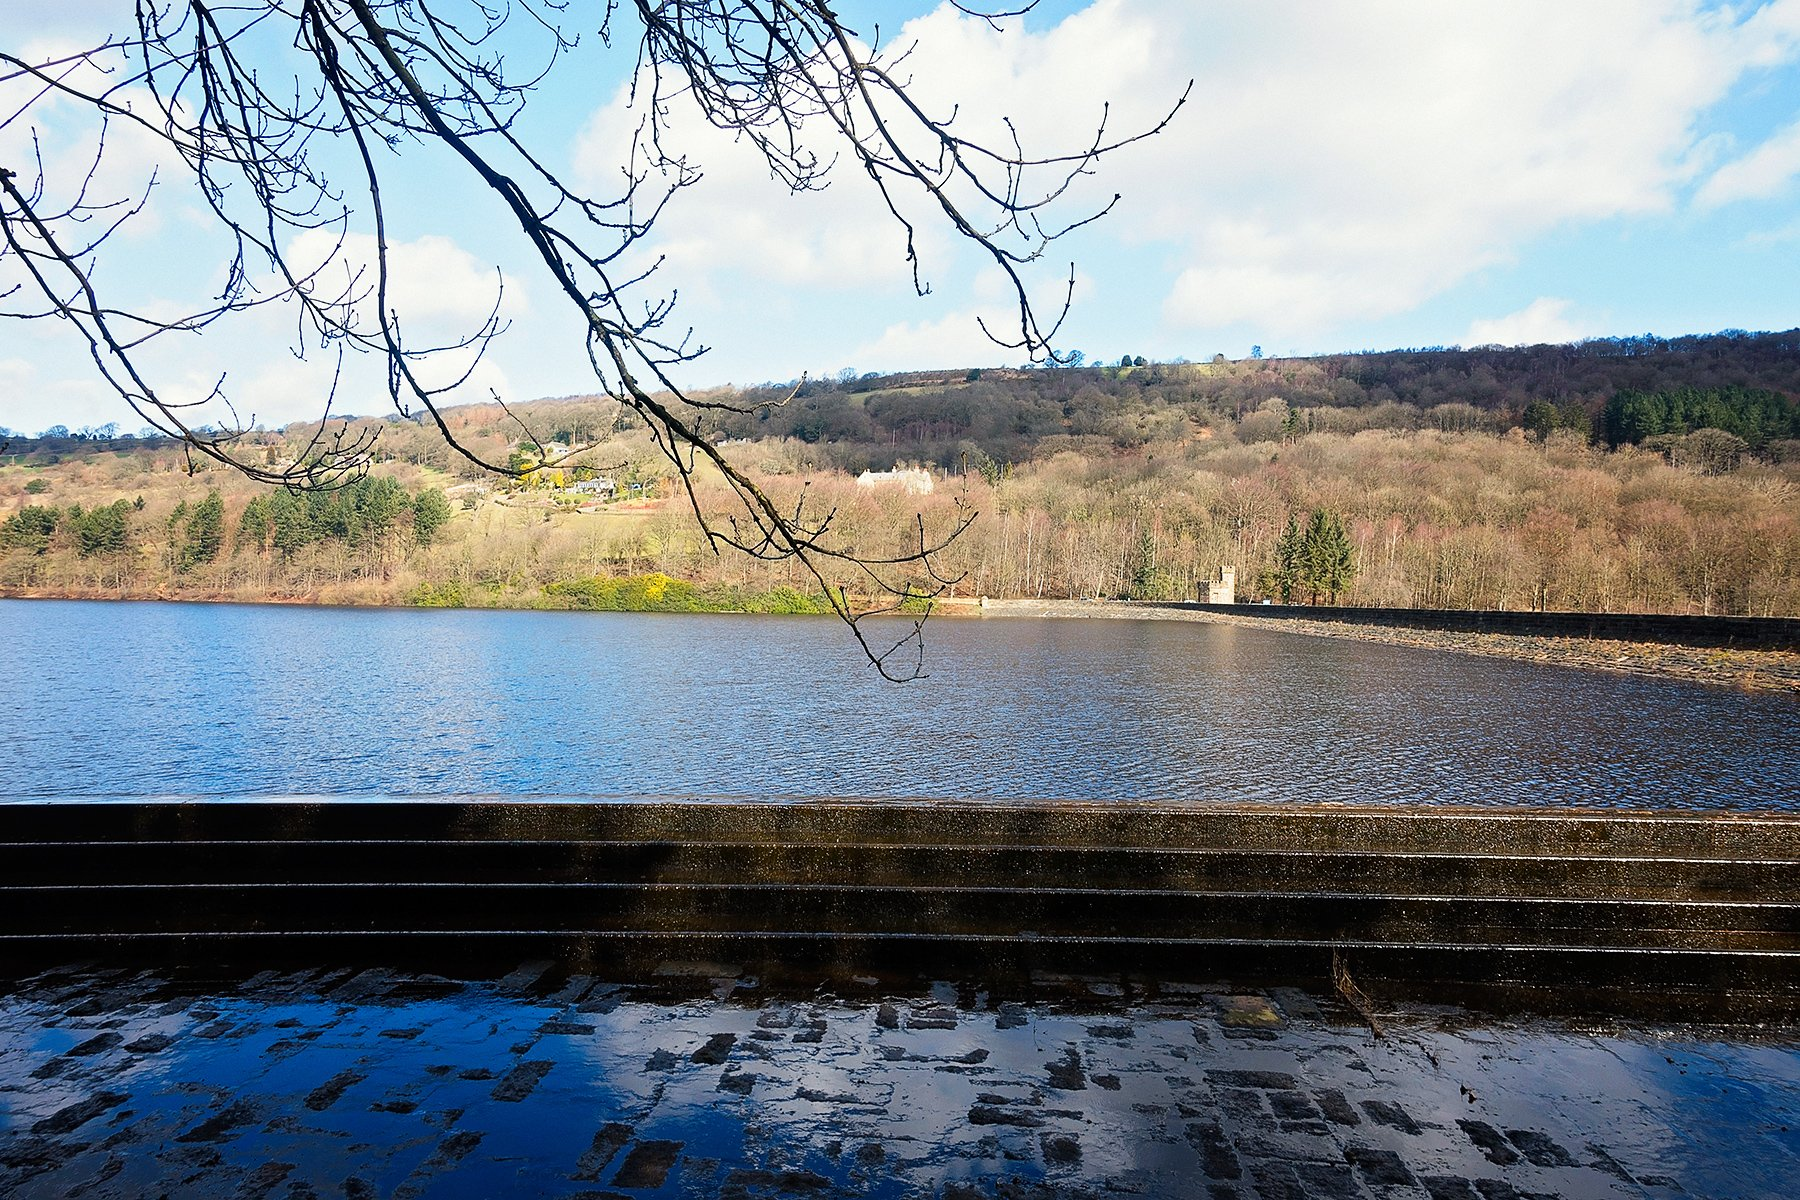 Sunny day at More Hall reservoir